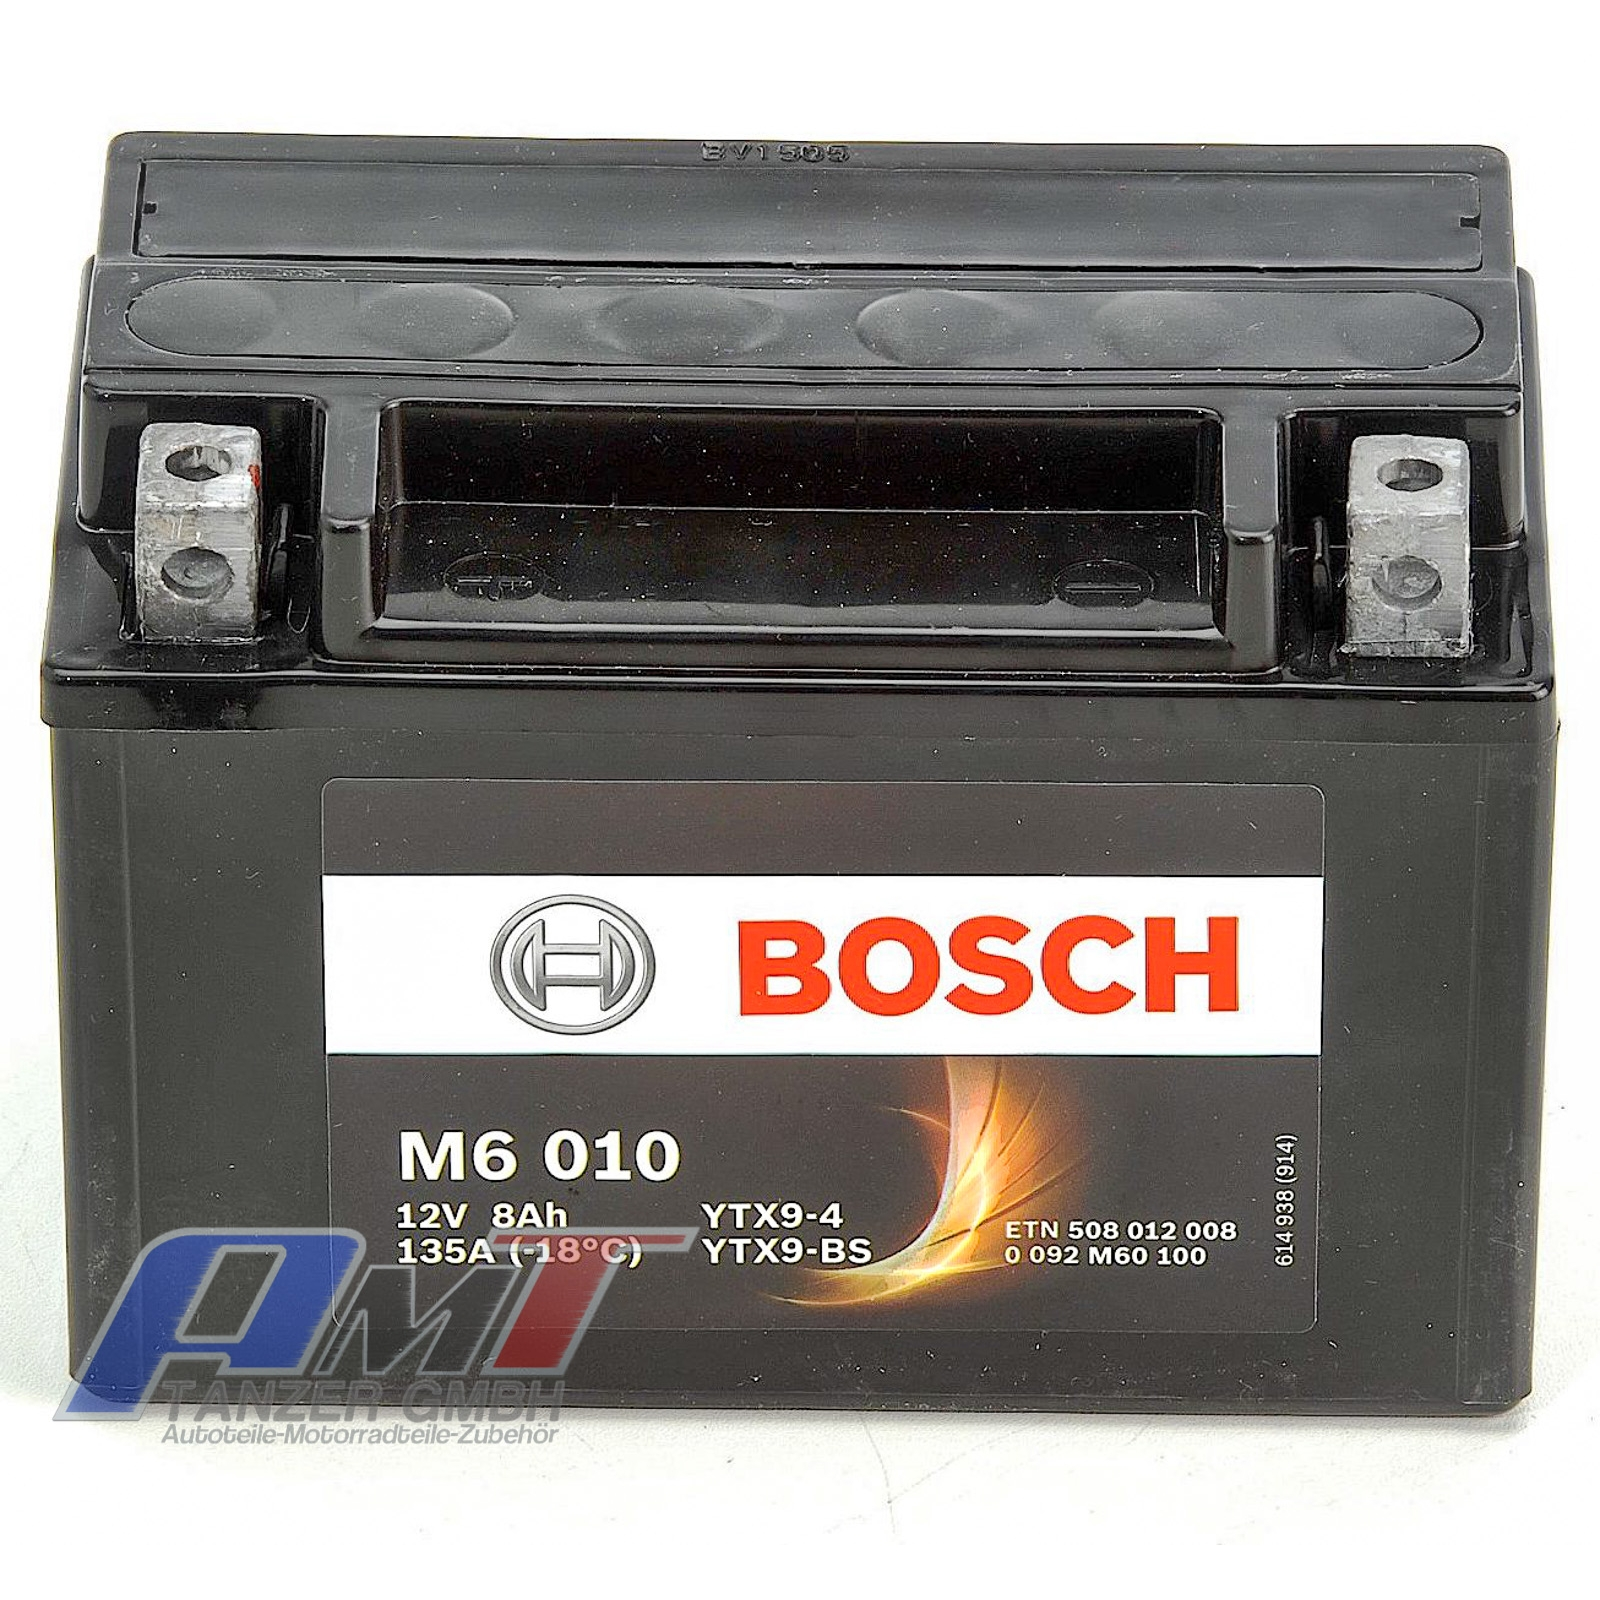 bosch ytx9 bs motorrad batterie m6 8ah 12v 0092m60100. Black Bedroom Furniture Sets. Home Design Ideas